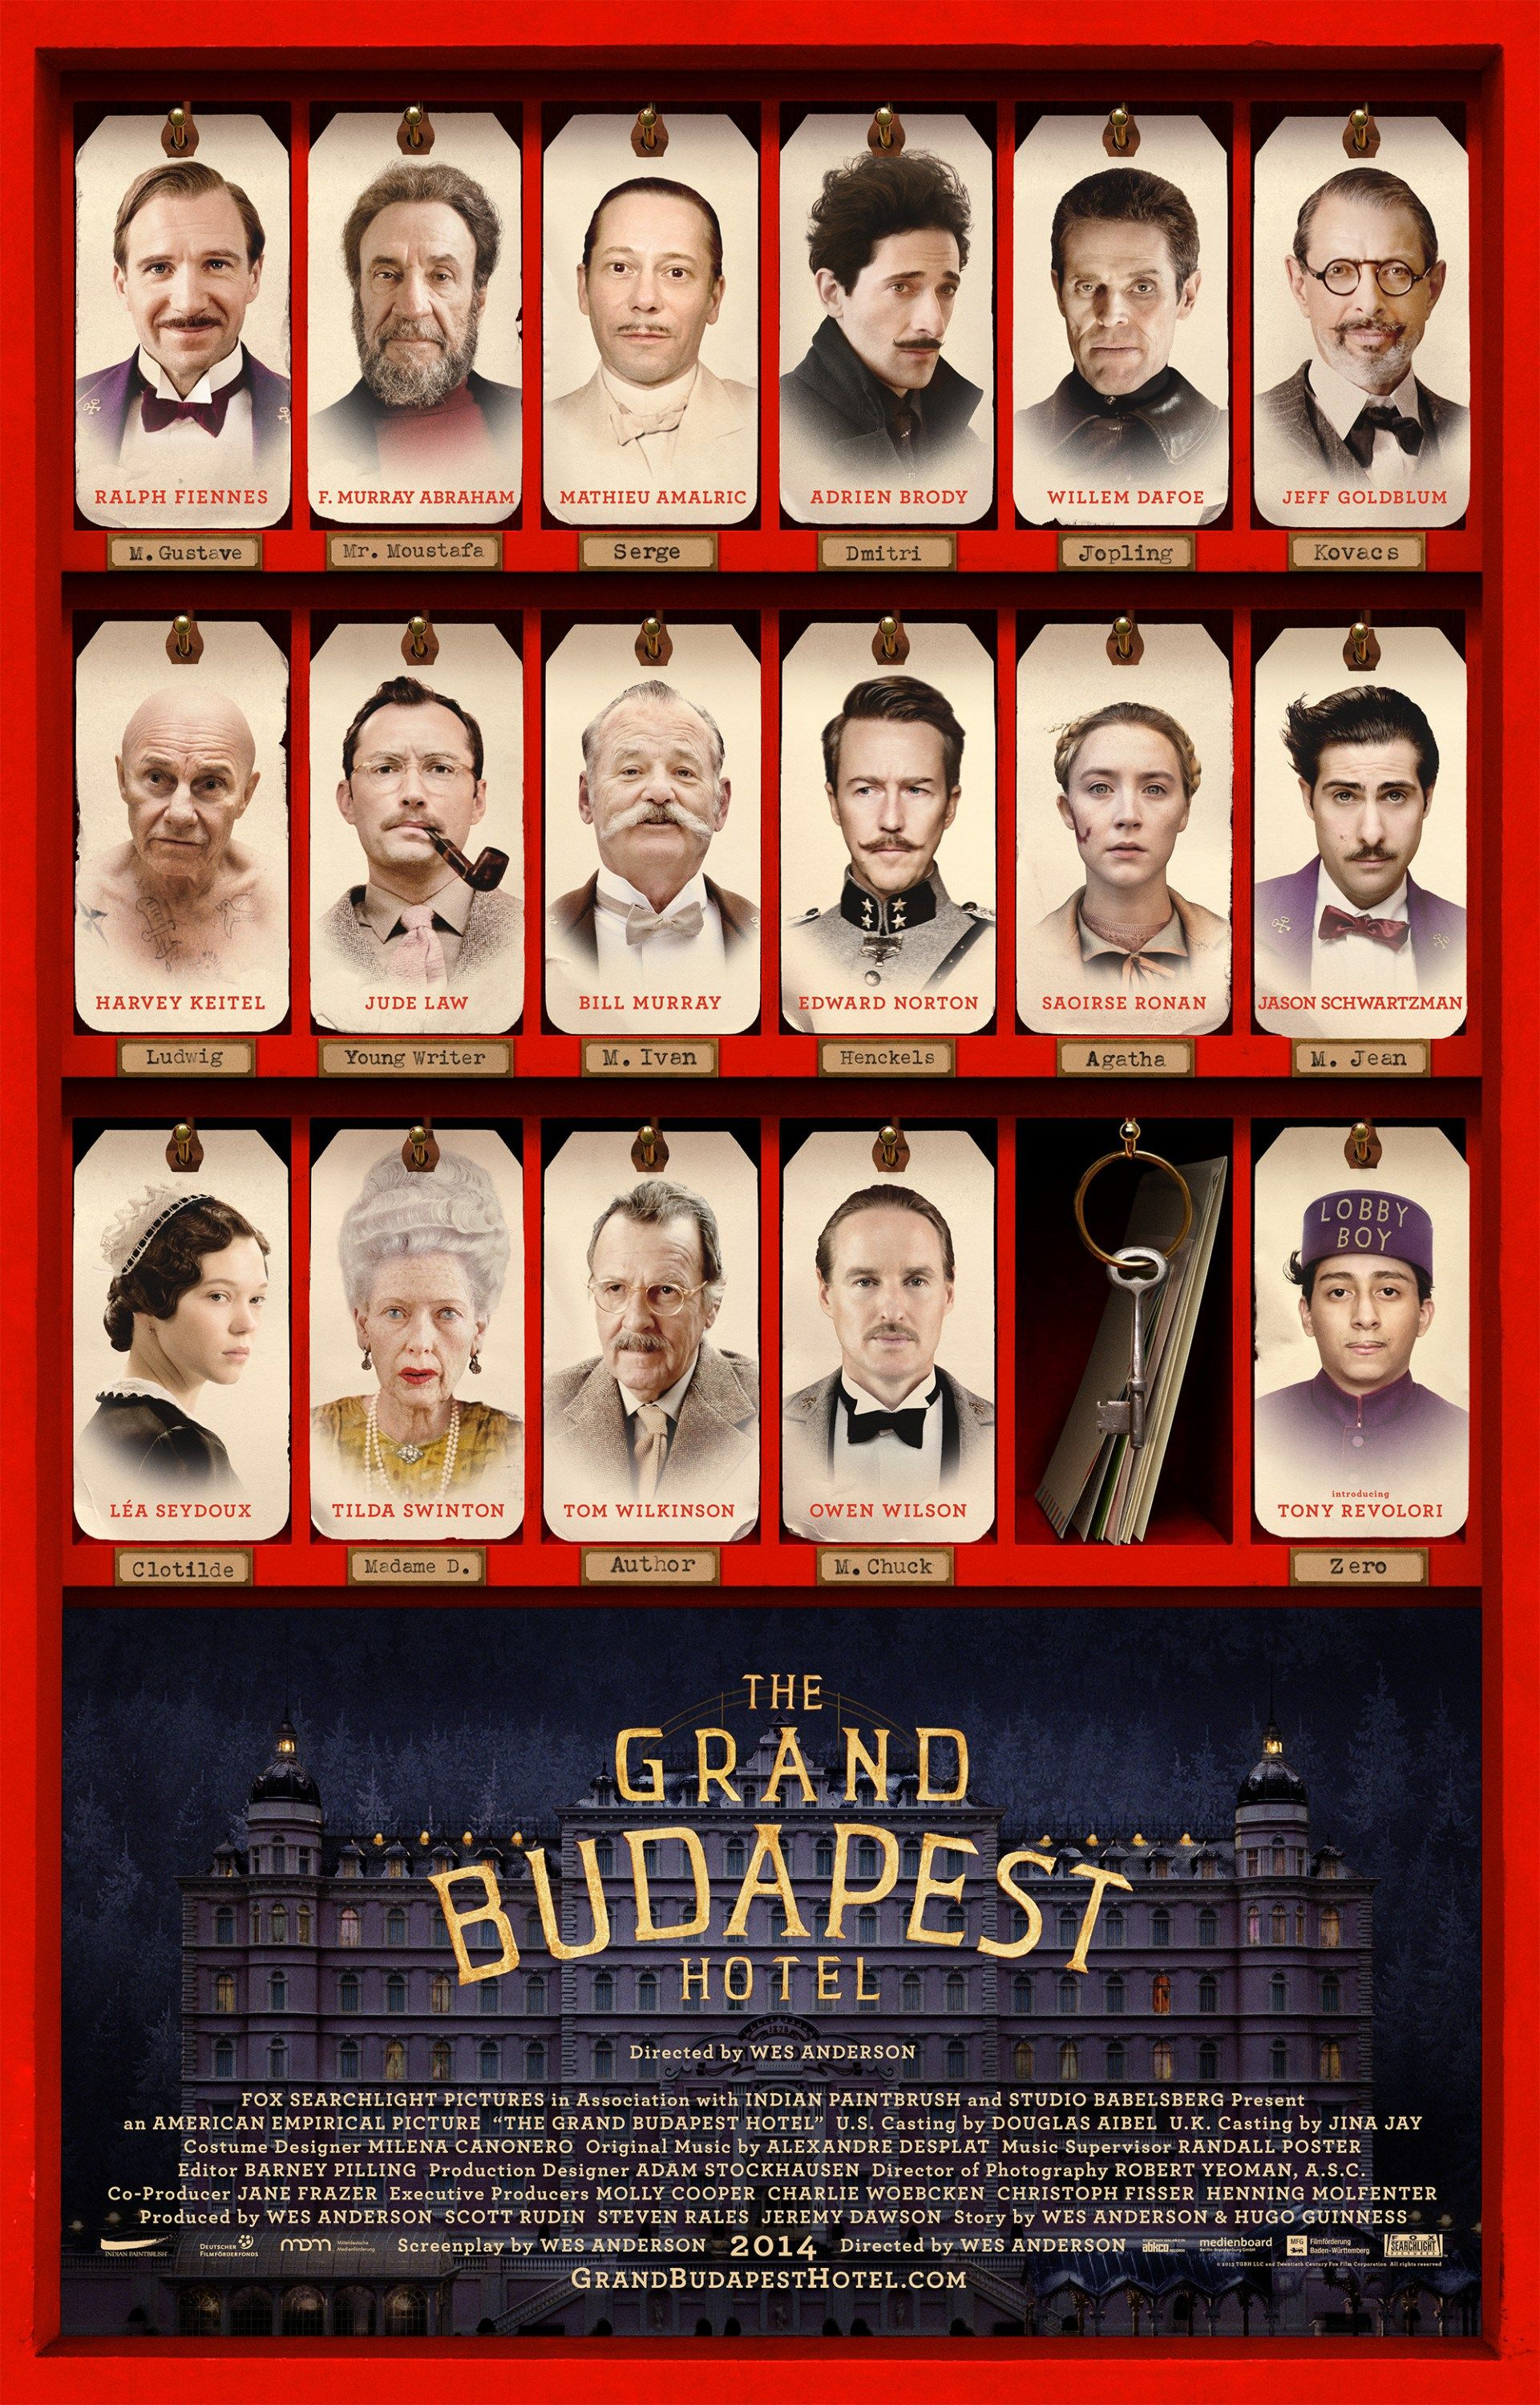 The Grand Budapest Hotel Poster The Grand Budapest Hotel Poster